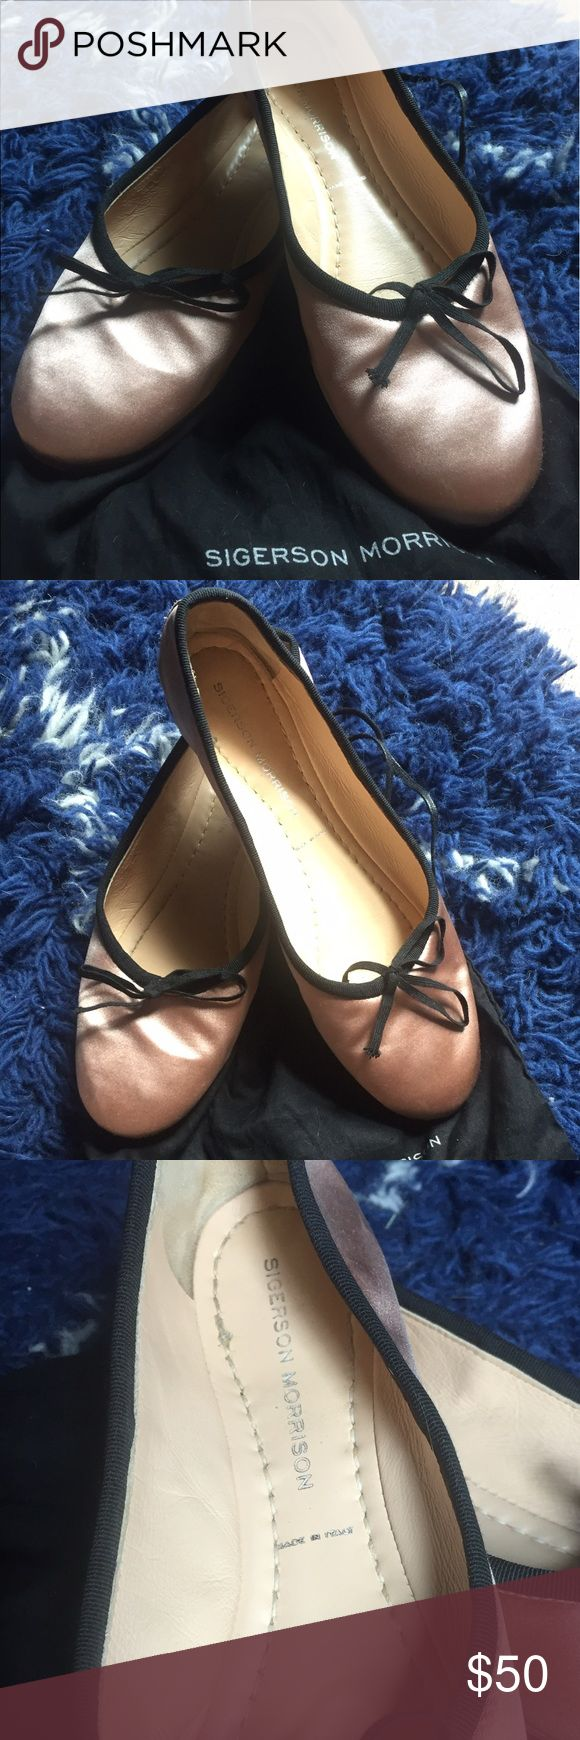 Sigerson Morrison ballet flats, size 7.5 Sigerson Morrison ballet flats, size 7.5, light pink silk with black bows and trim. Dust bag included. Perfect to put in your purse for when your heels get too painful! Sigerson Morrison Shoes Flats & Loafers